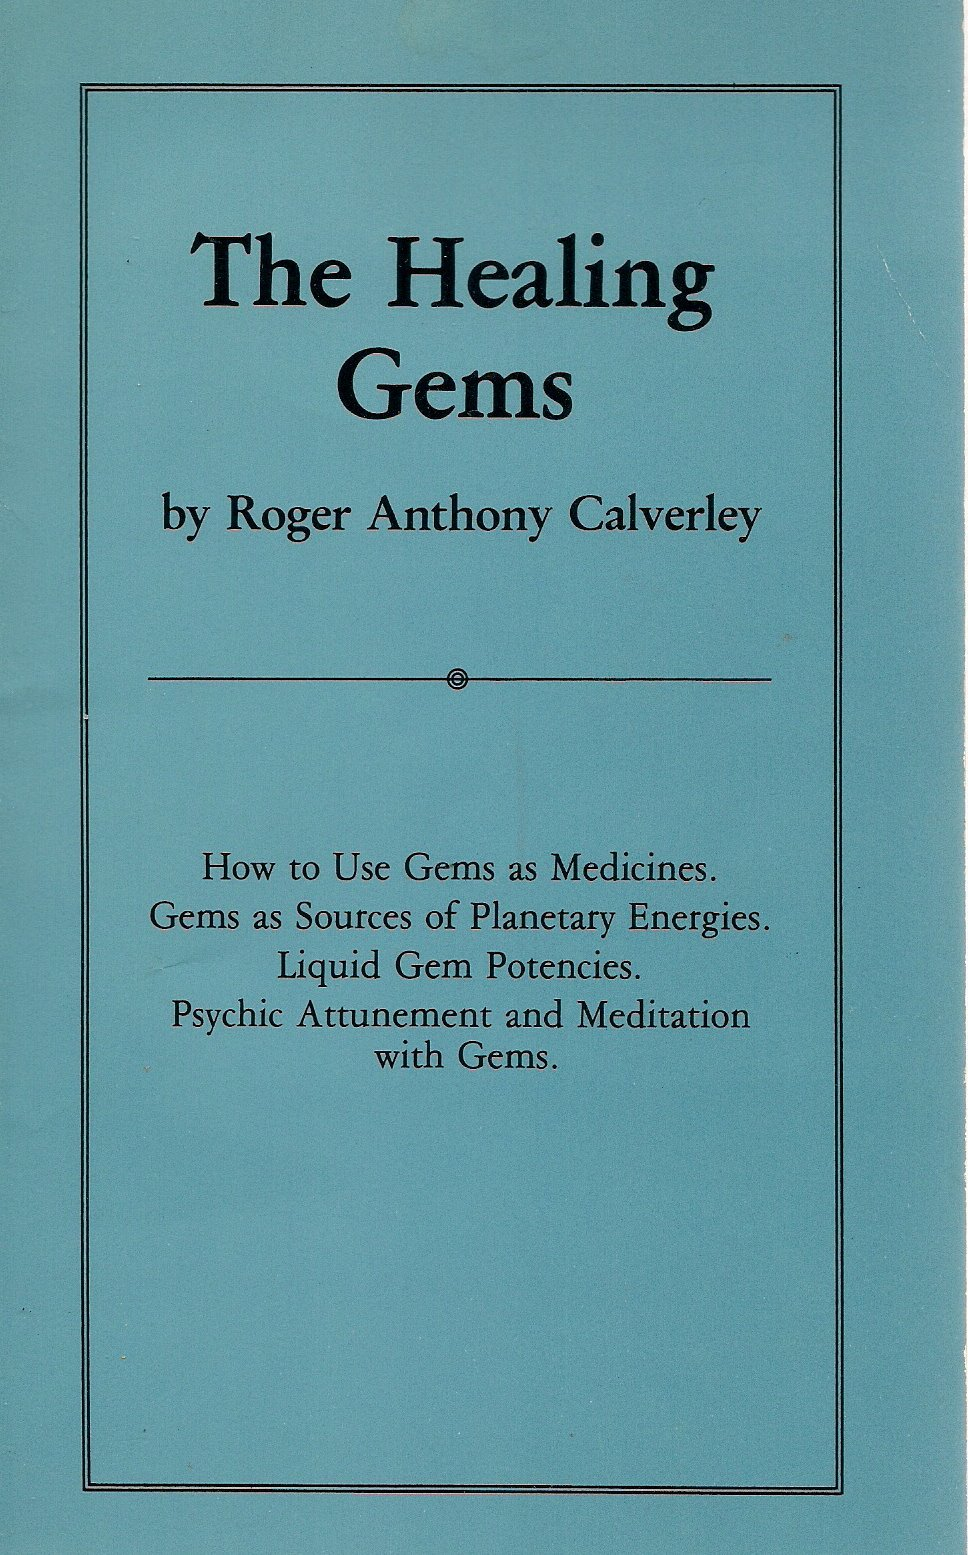 The Healing Gems [How to Use Gems as Medicines; Gems as Sources of Planetary Energies; Liquid Gem Potencies; Psychic Attunement and Meditation with Gems], Roger Anthony Calverley